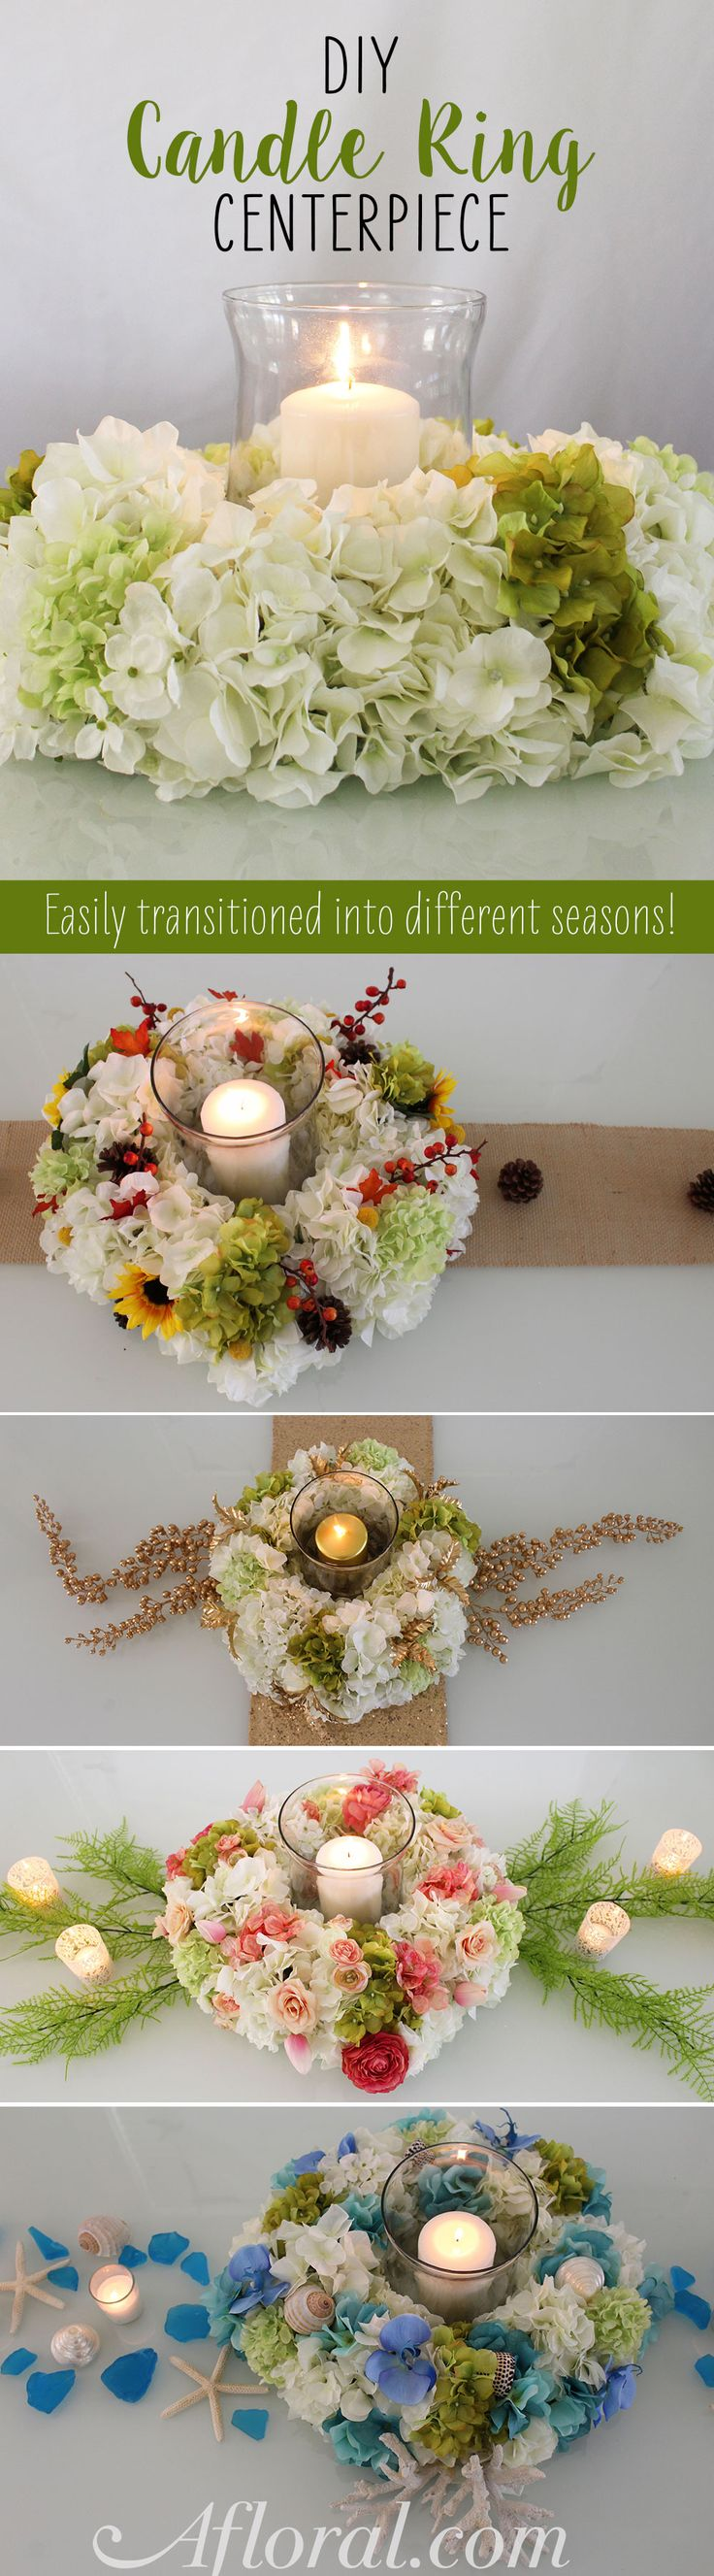 Get a centerpiece for every season with this easy DIY from Afloral.com.  Follow this easy step by step DIY for a fun way to create a candle ring for your table centerpiece.  Mix up the silk flowers and decor for each season!